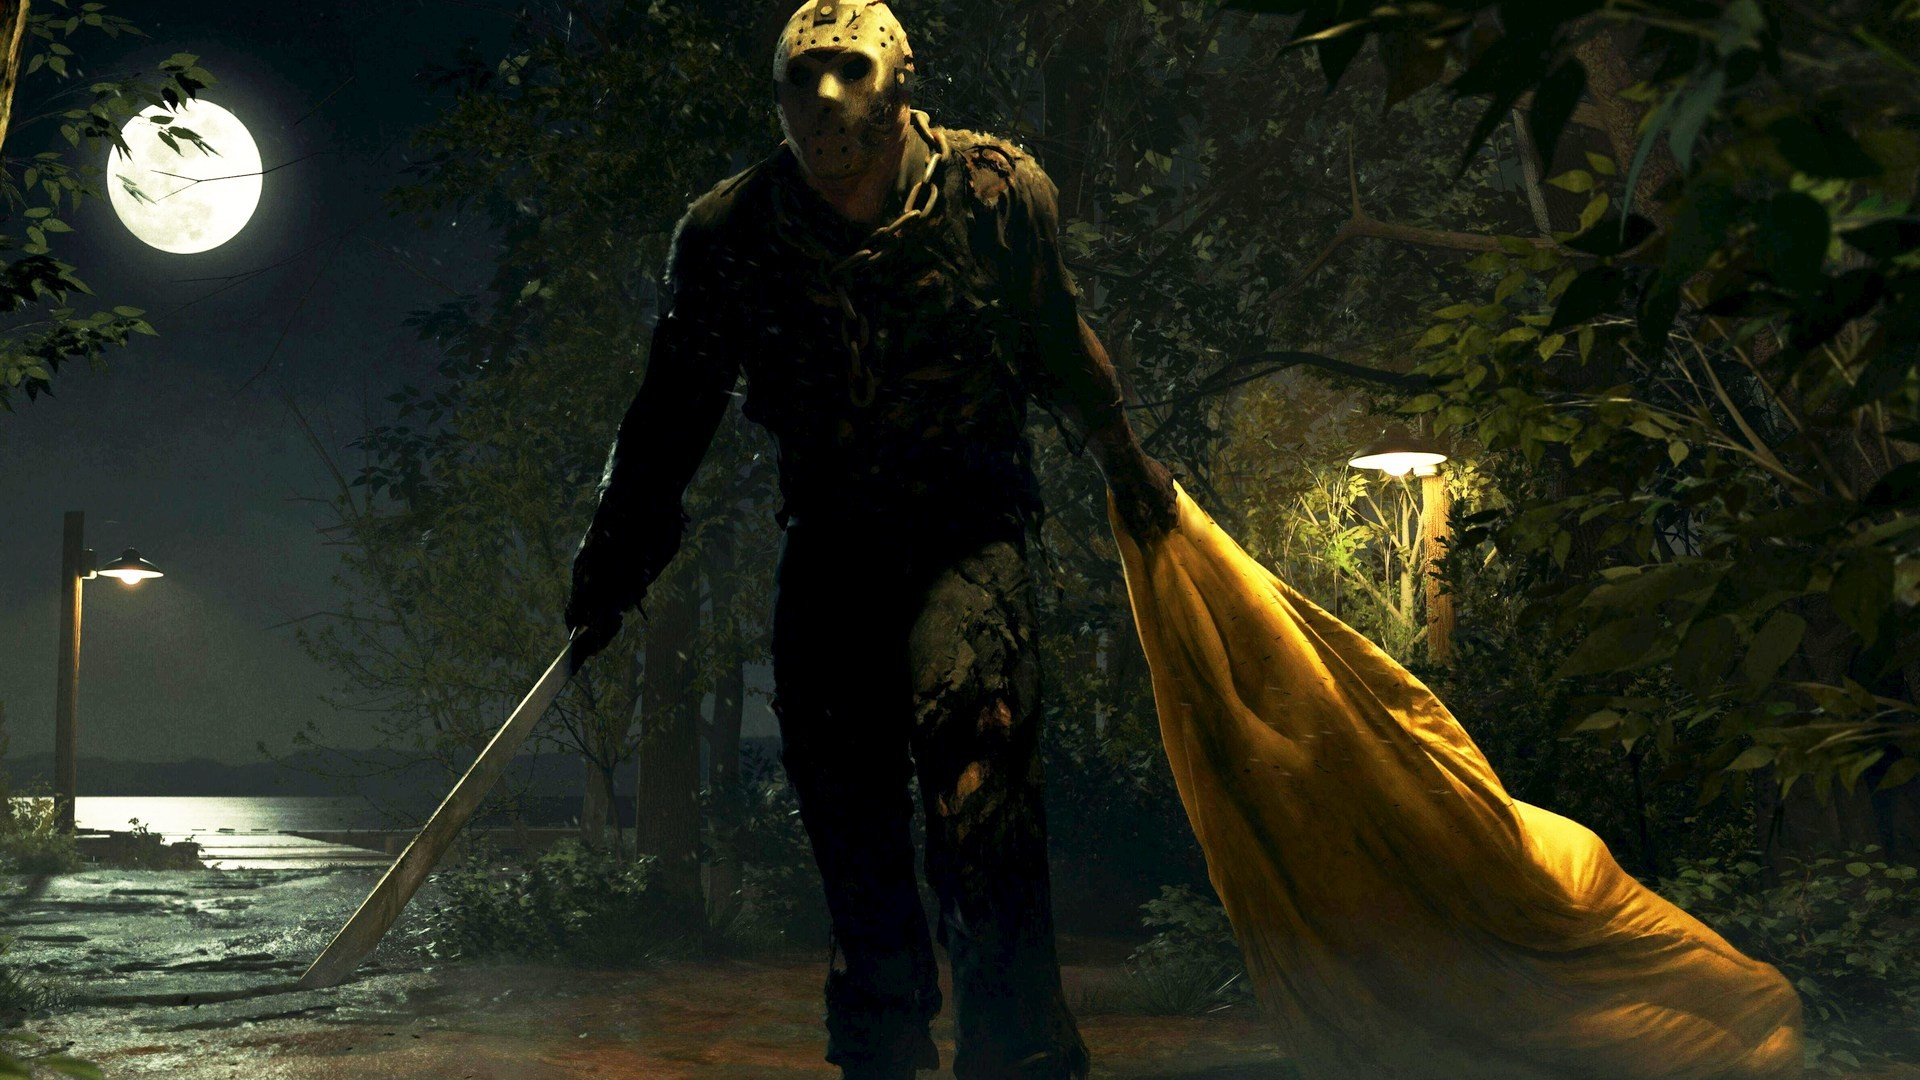 1920x1080 Friday the 13th: The Game HD Wallpapers